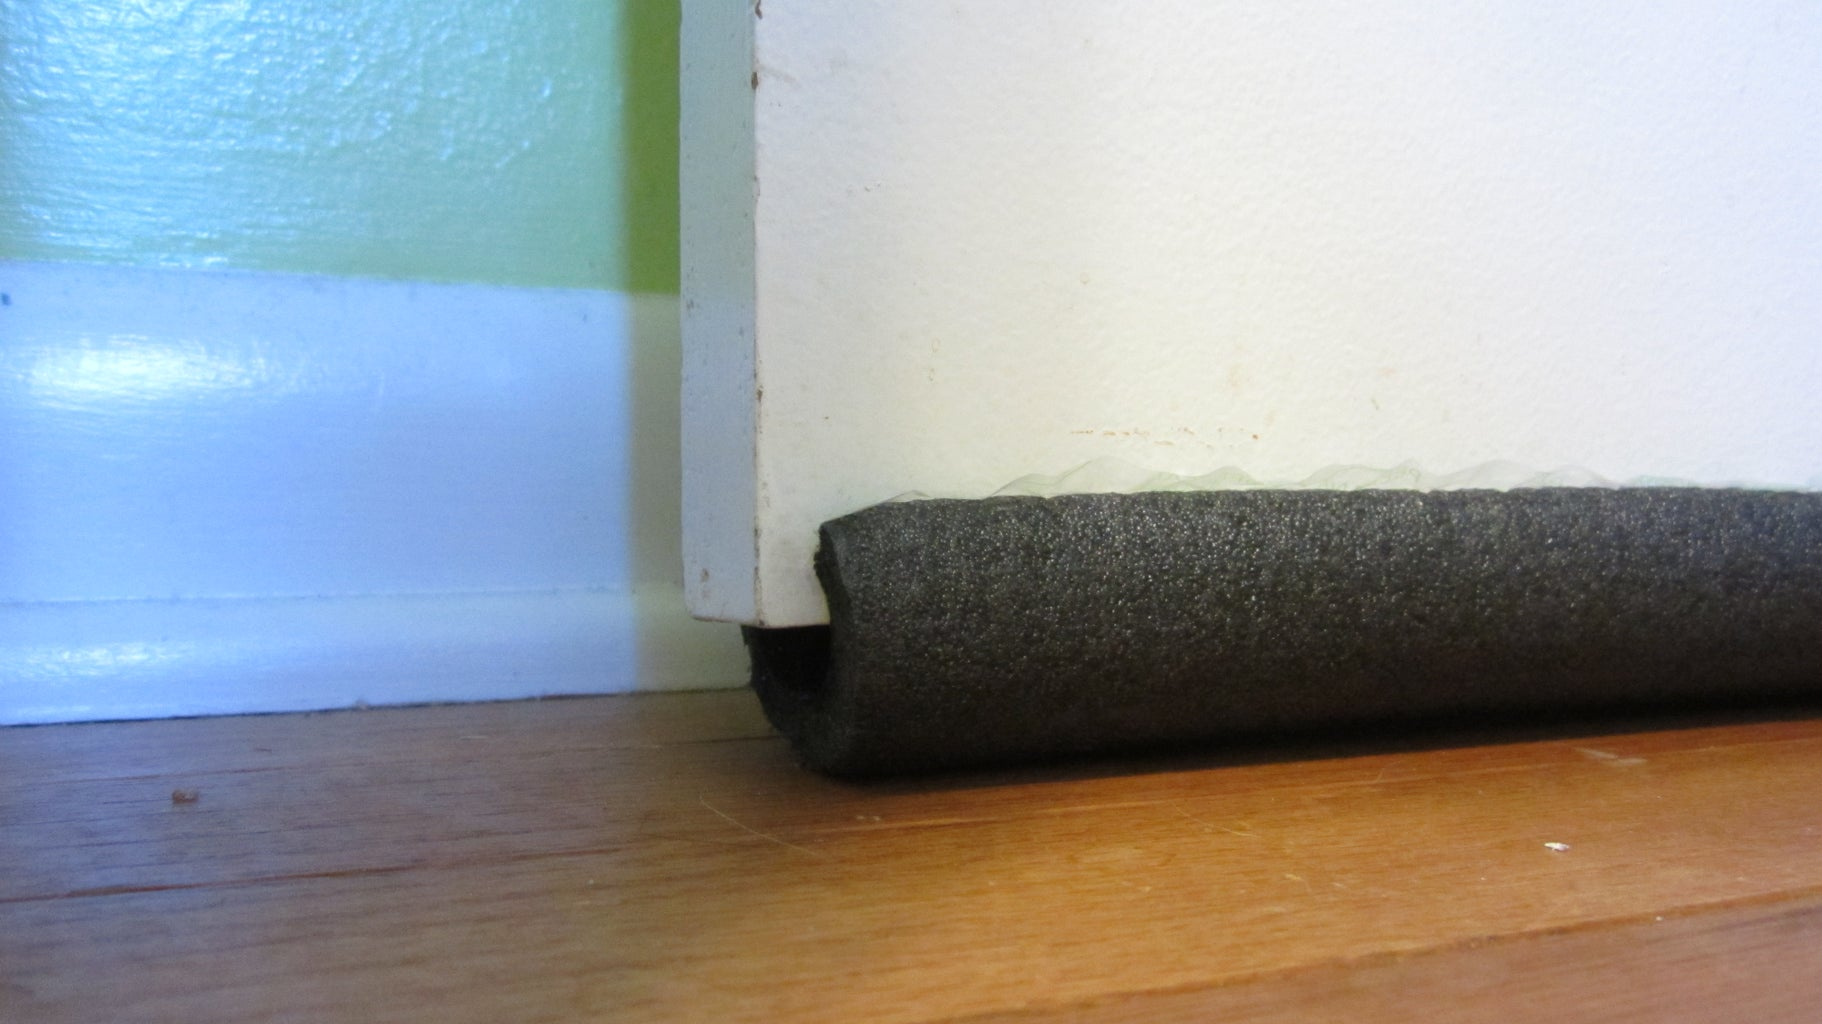 Use Pipe Insulation to Fill Gaps Below Doors